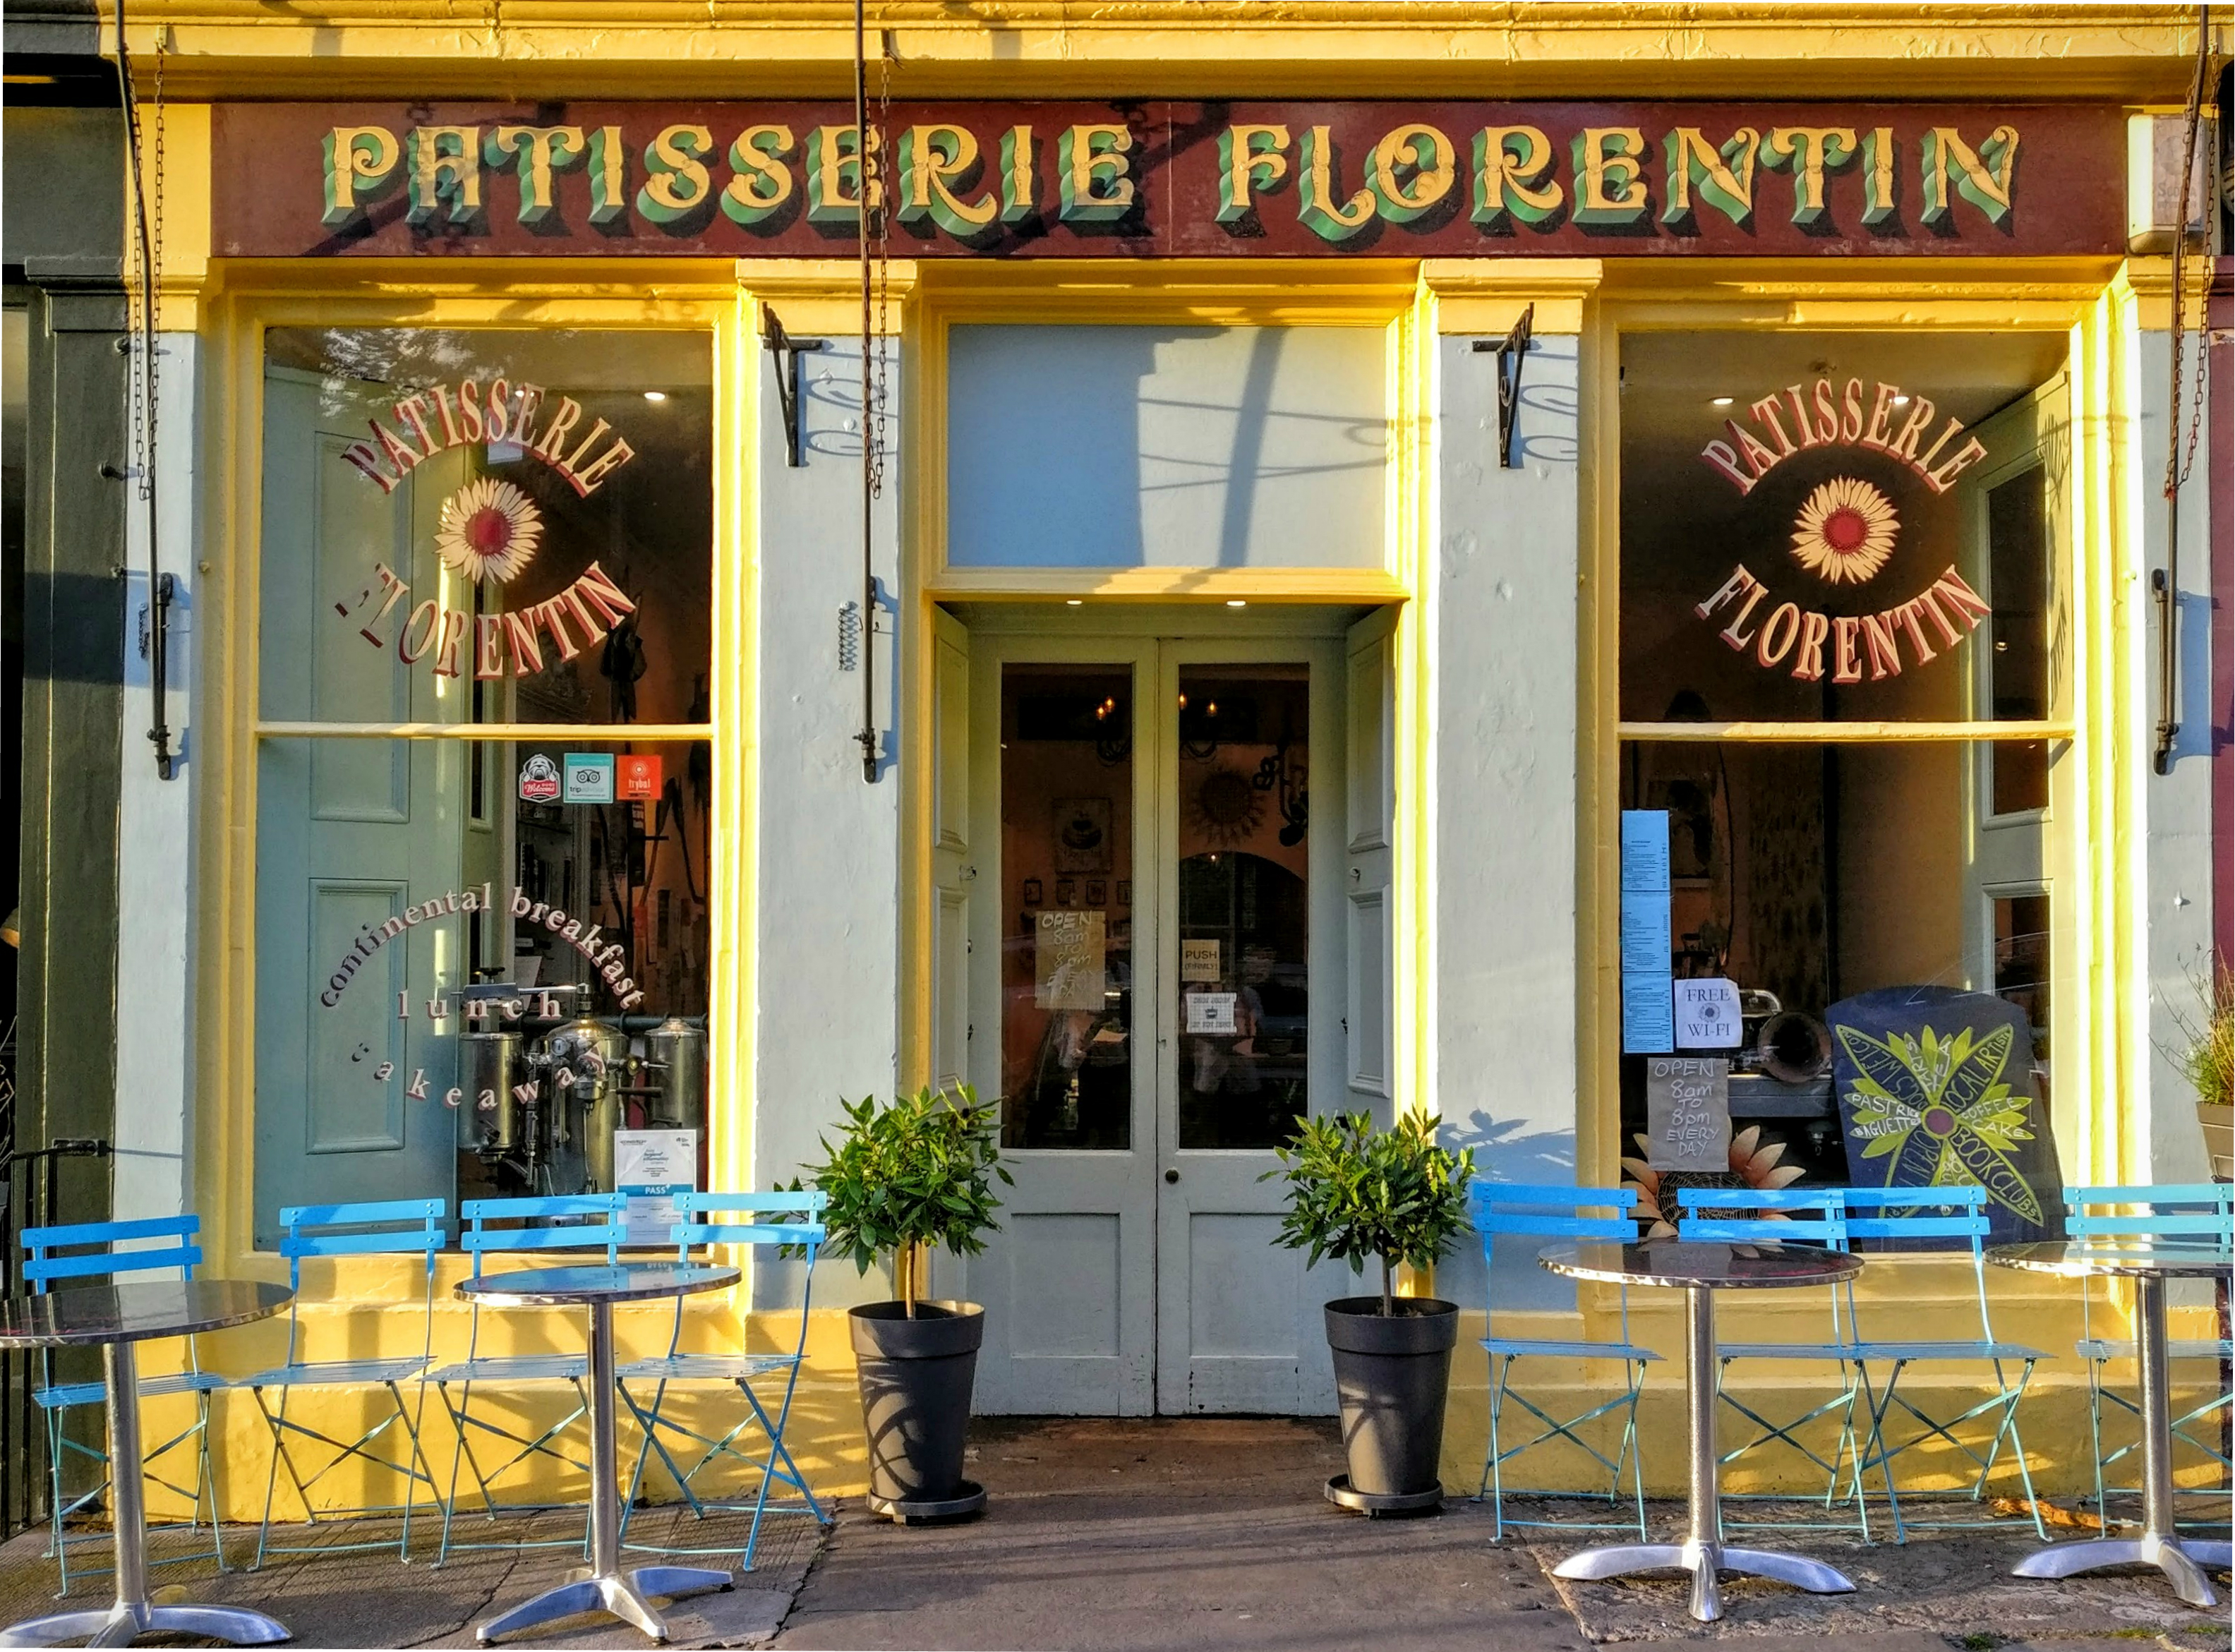 Patisserie Florentin profile level